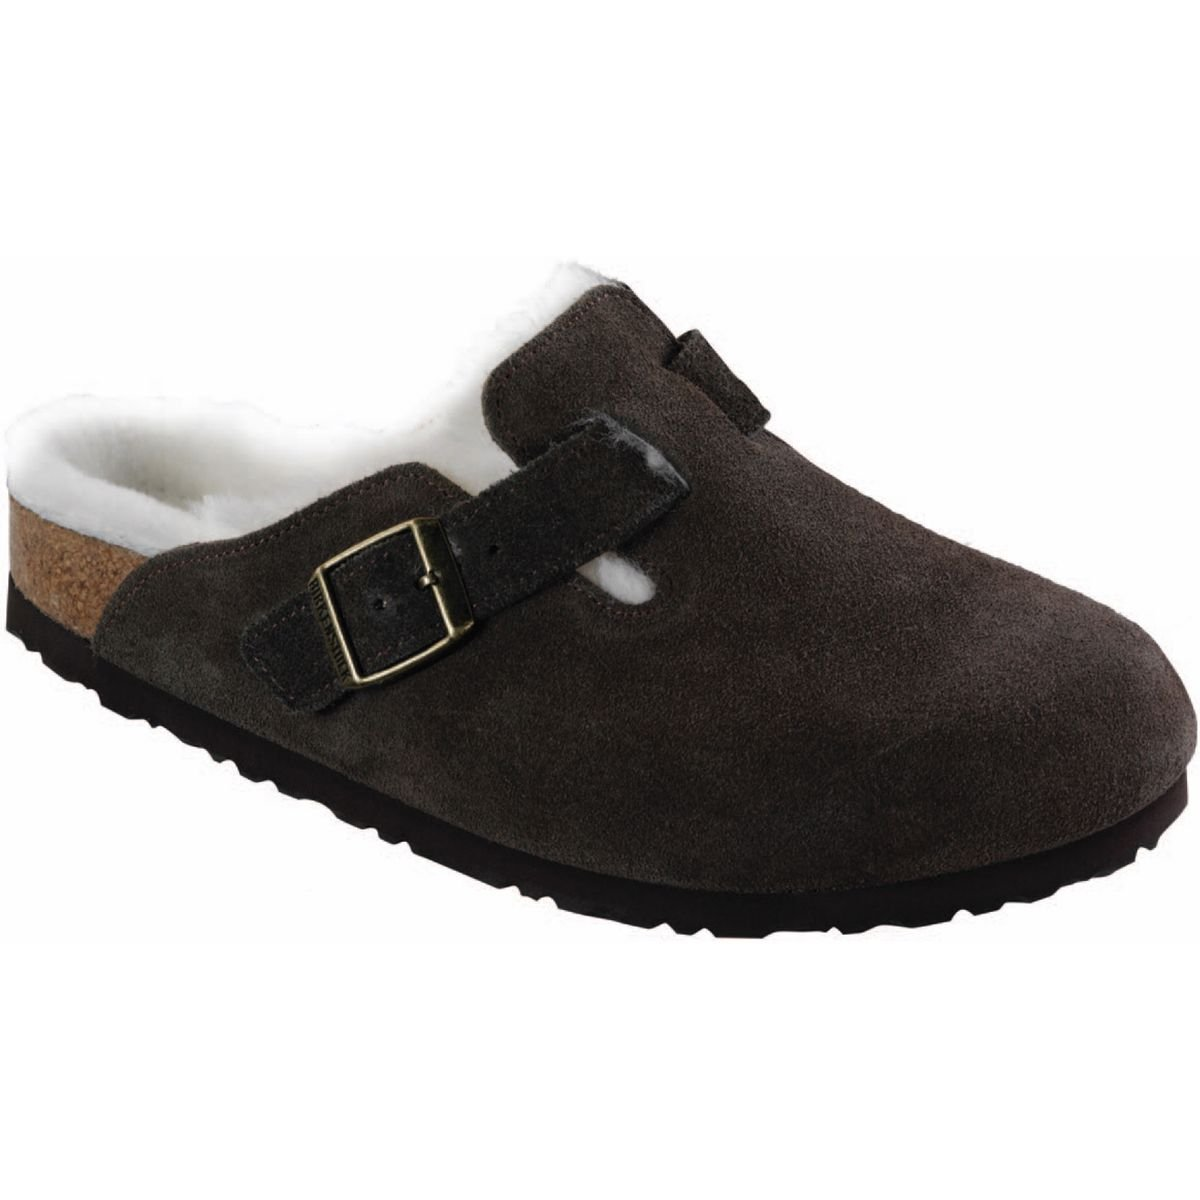 1e8c71809ab6 Birkenstock Boston Shearling Lined Clog - Women s Mocha Suede 43   Amazon.co.uk  Shoes   Bags